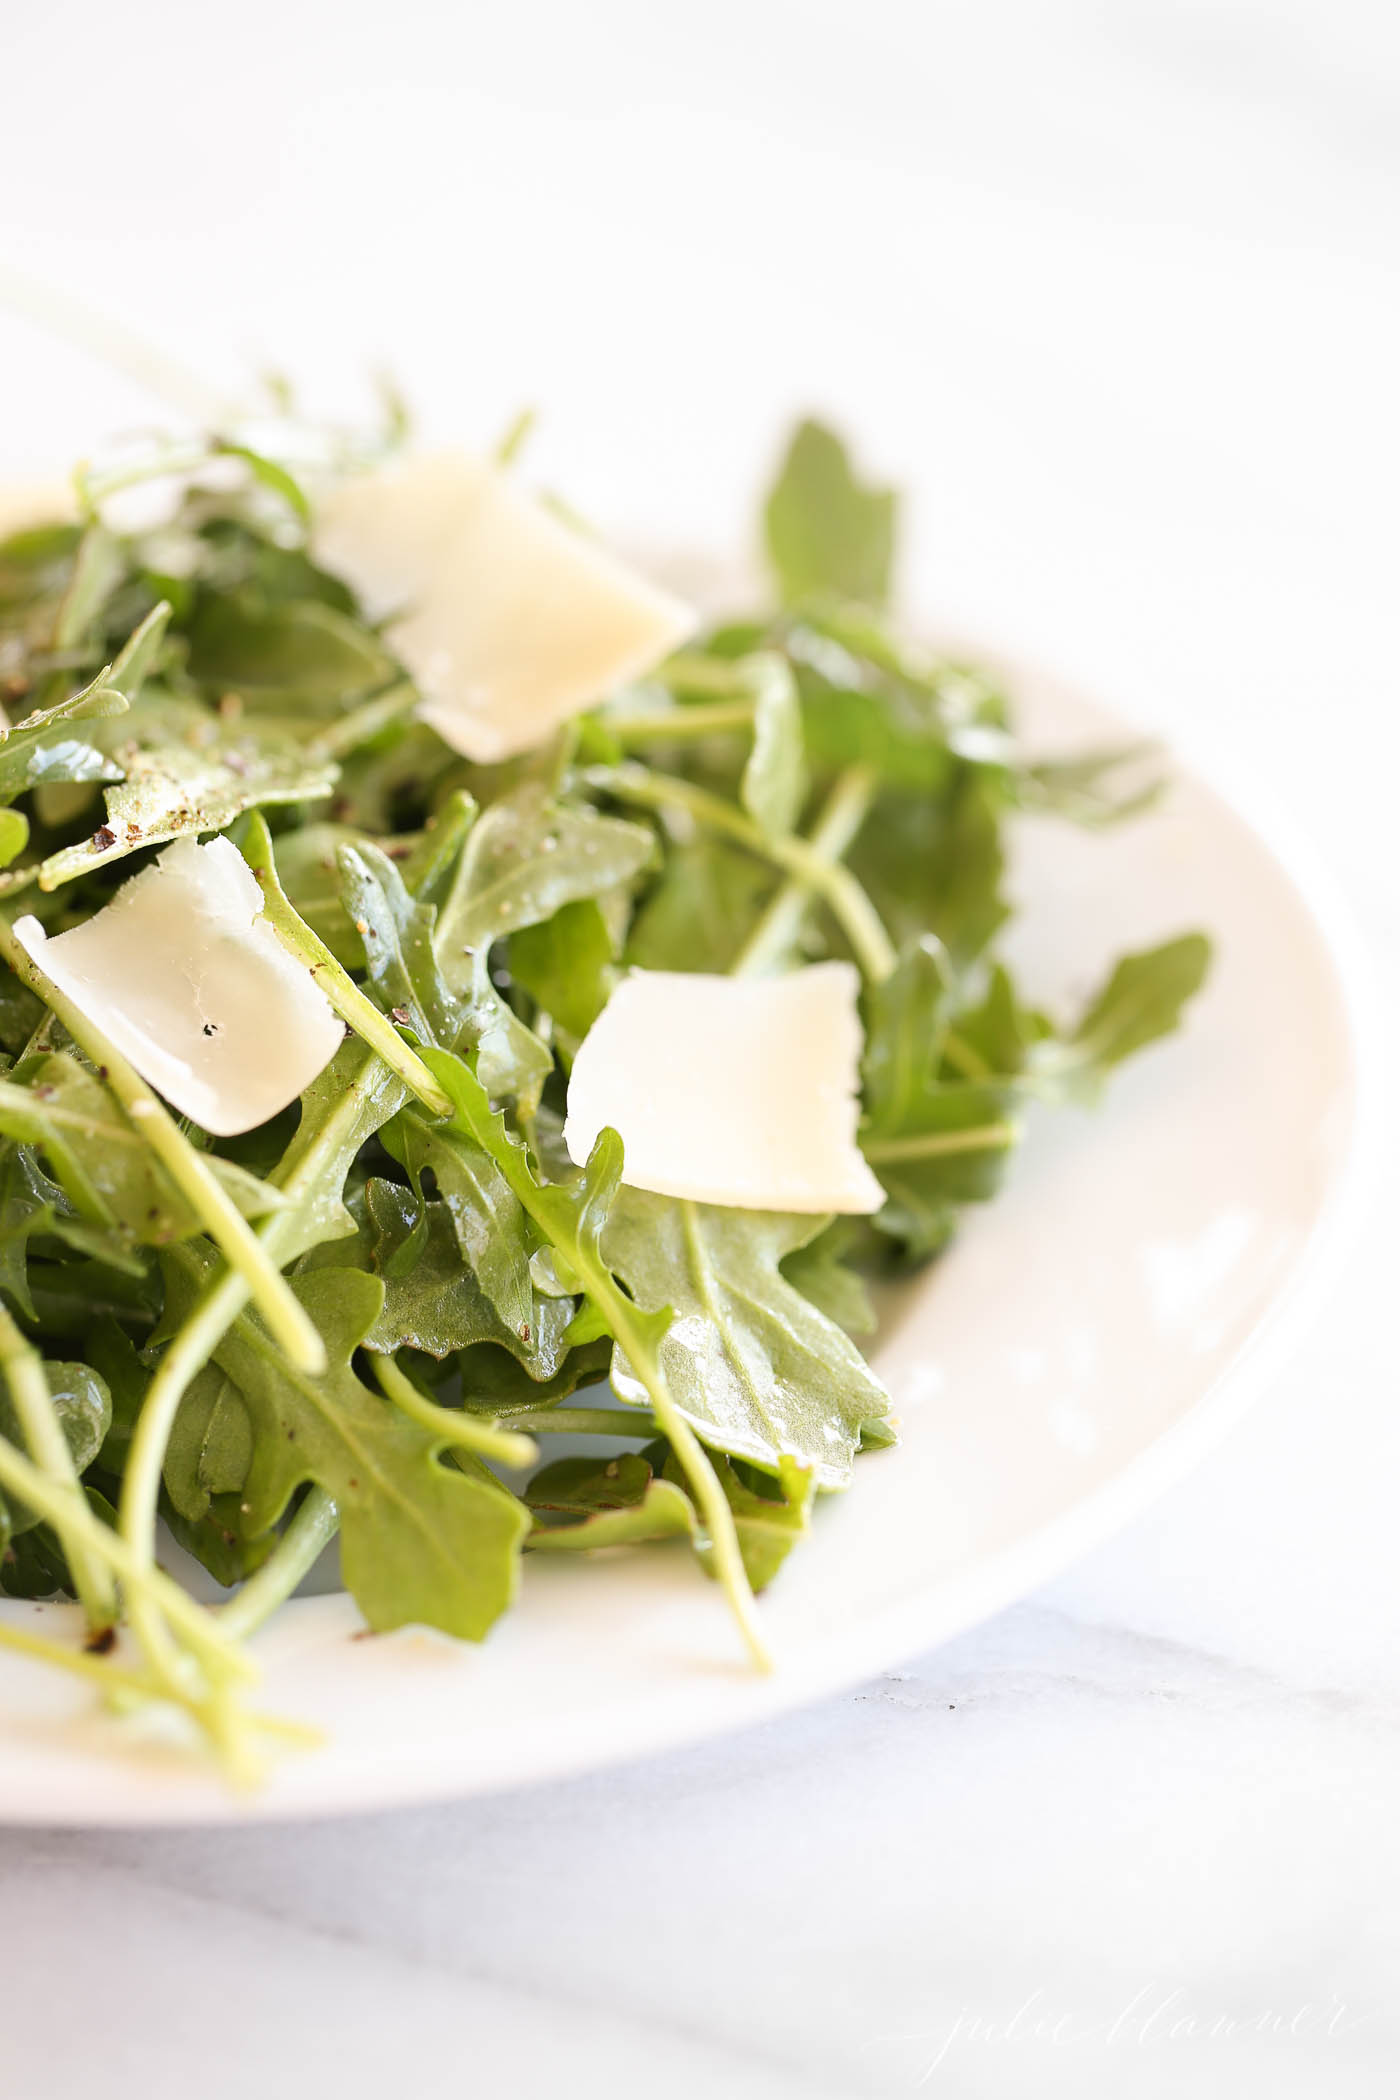 arugula salad with parmesan shavings and vinaigrette